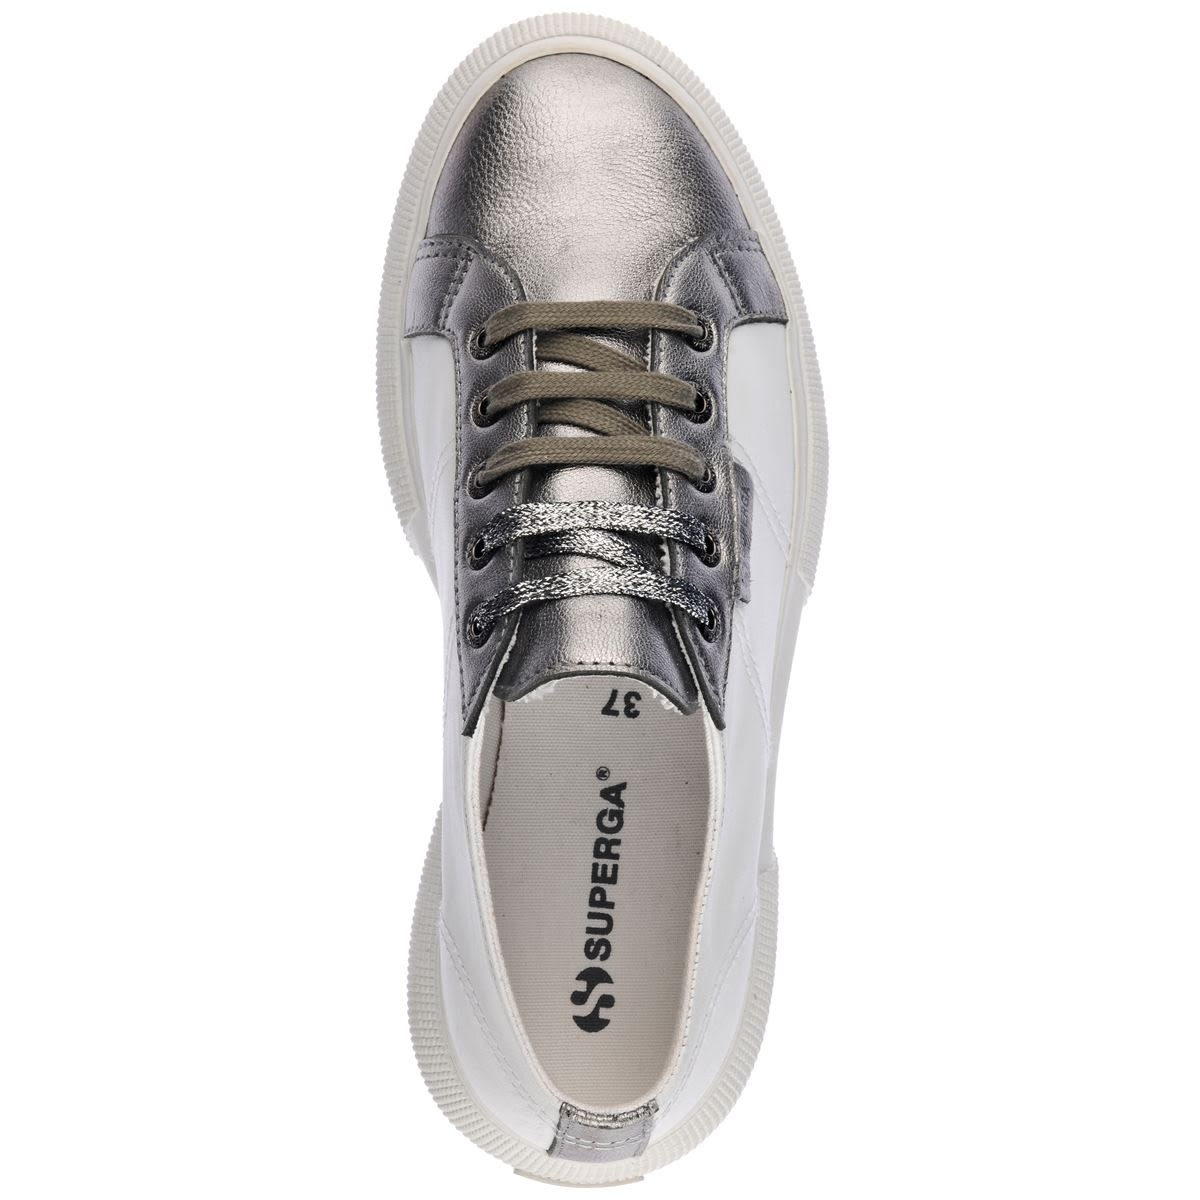 Superga Sneaker 10768888 2287 Whitegun Metal rxrFHw7qS